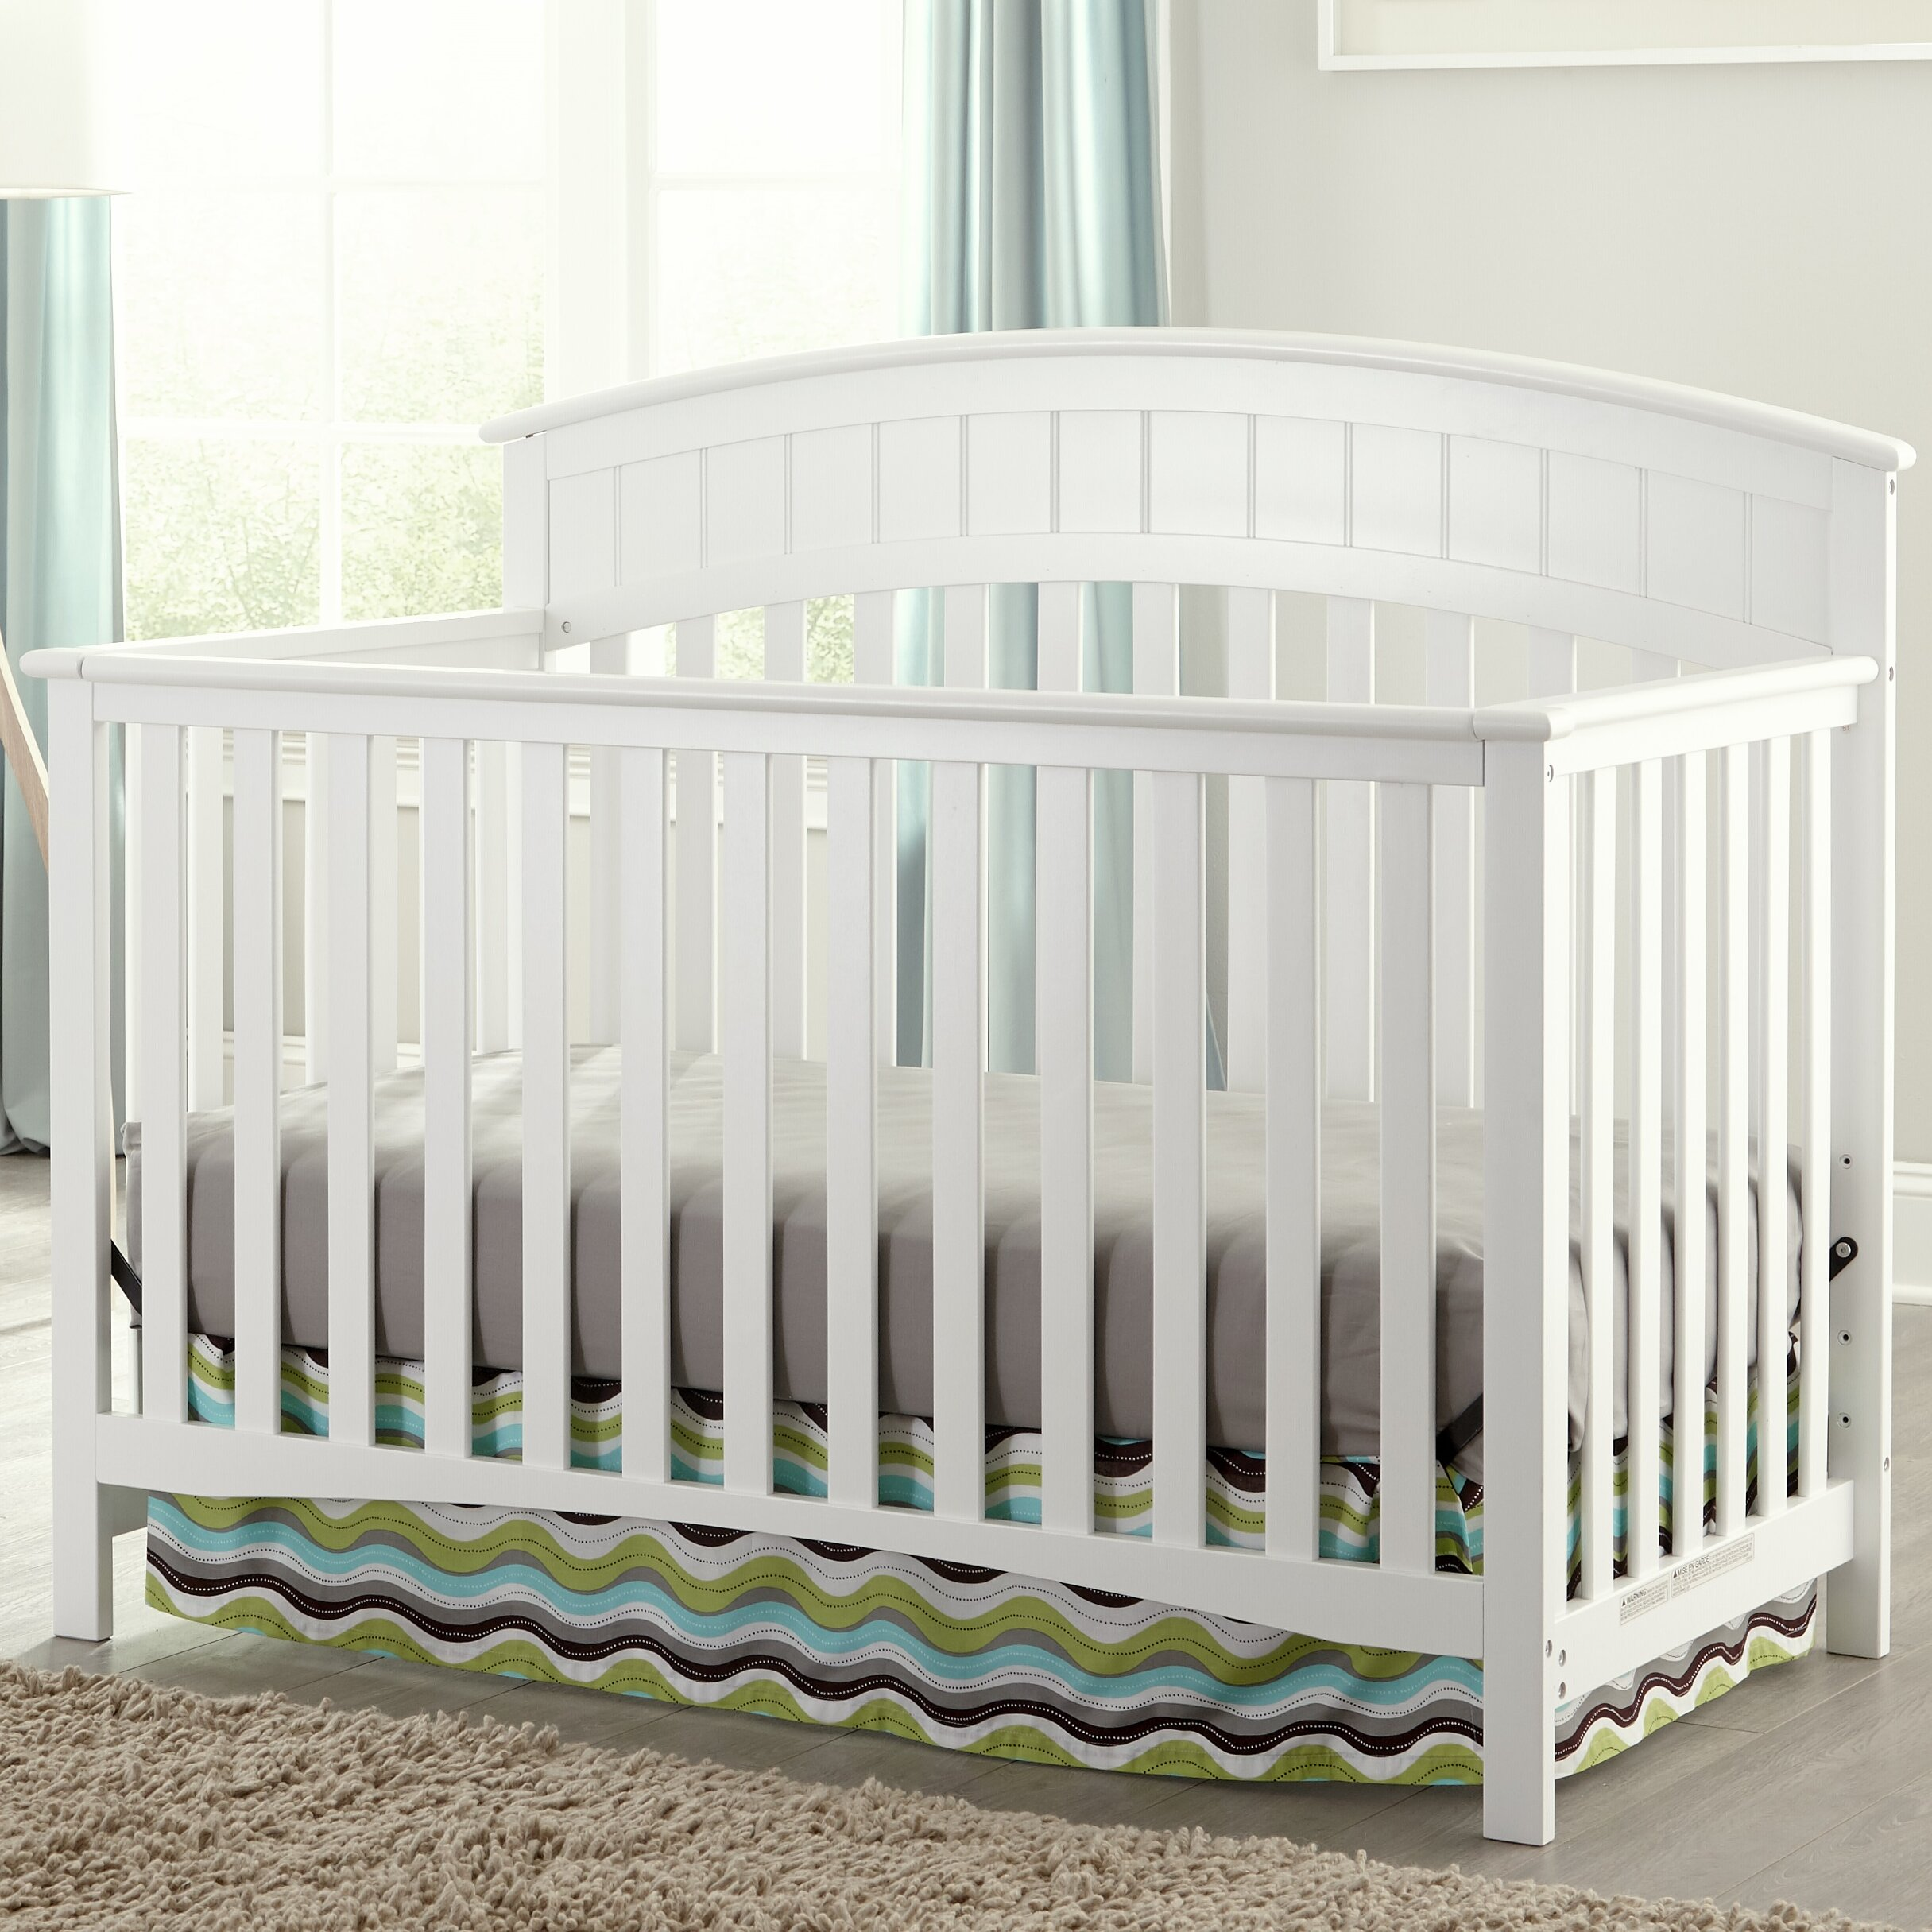 c922d1af3c Graco Charleston 4-in-1 Convertible Crib   Reviews